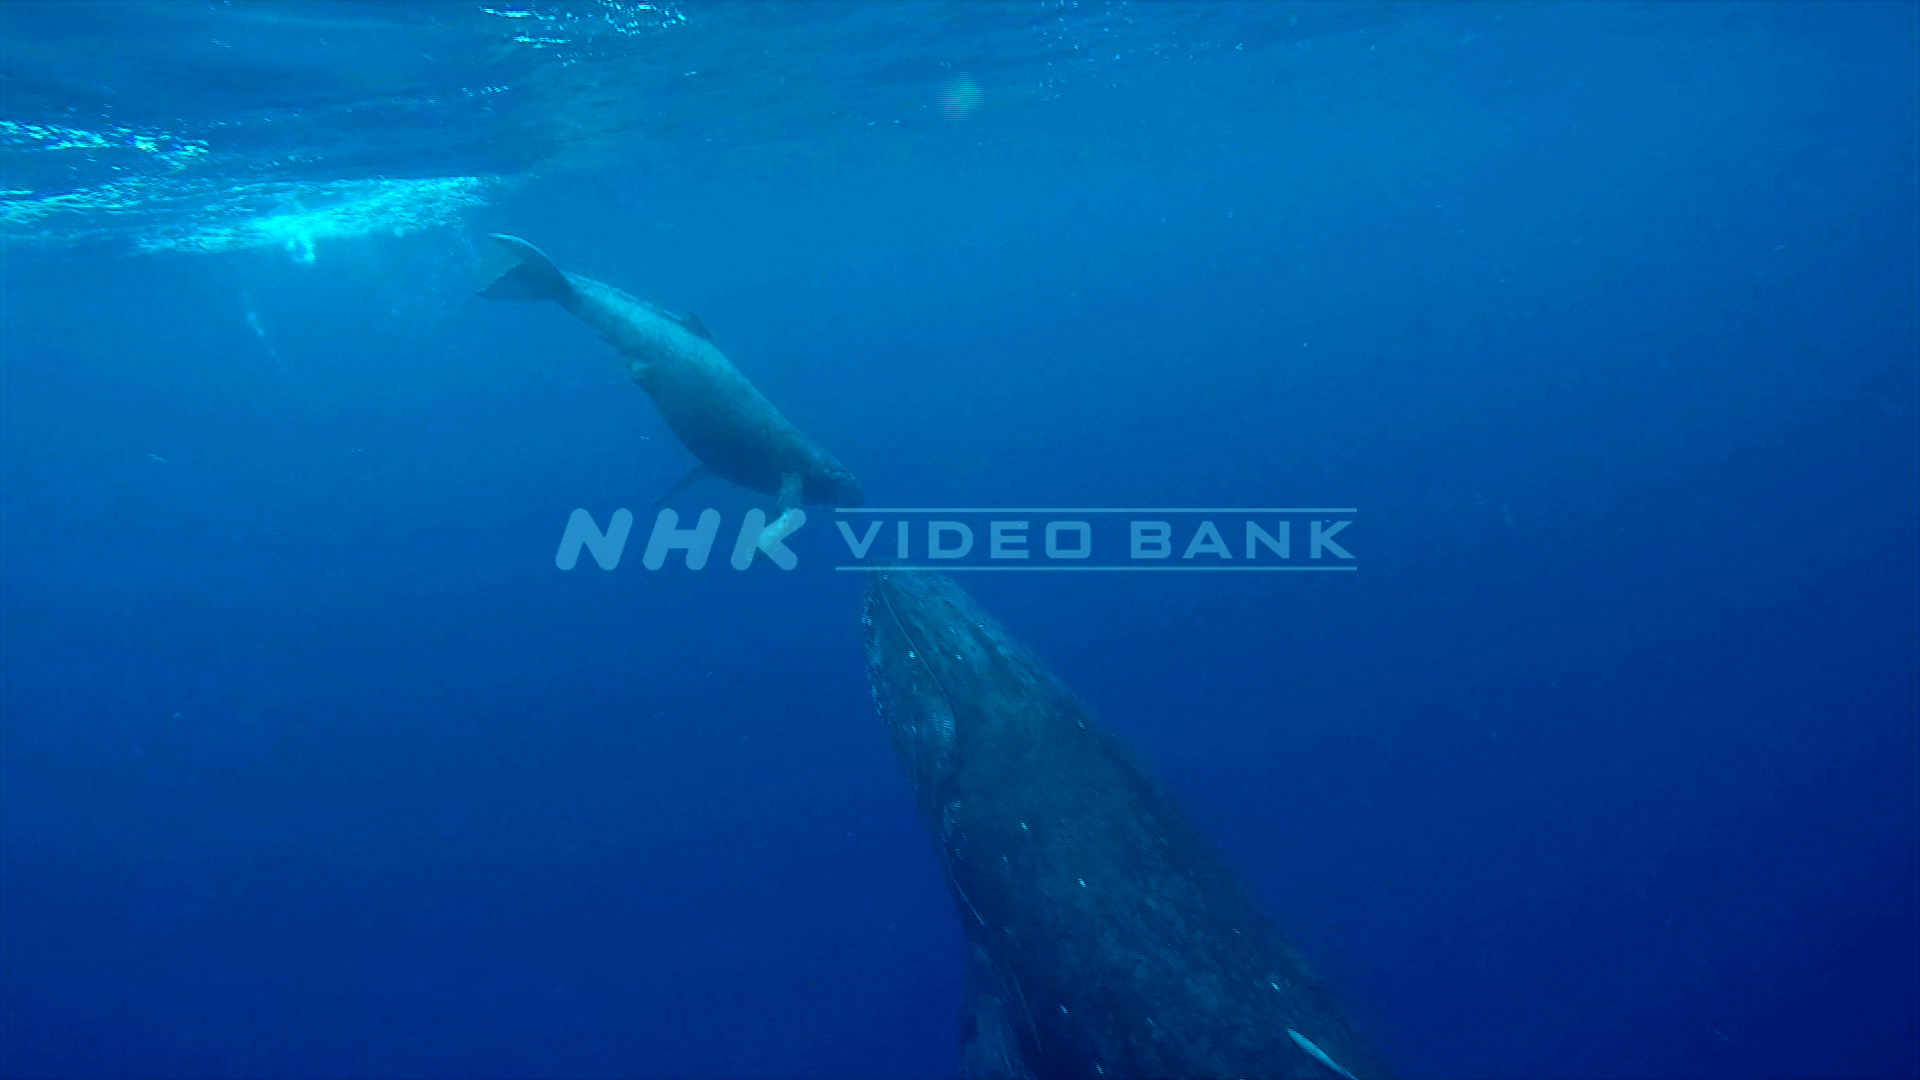 Underwater: humpback whale, the bond between mother and child